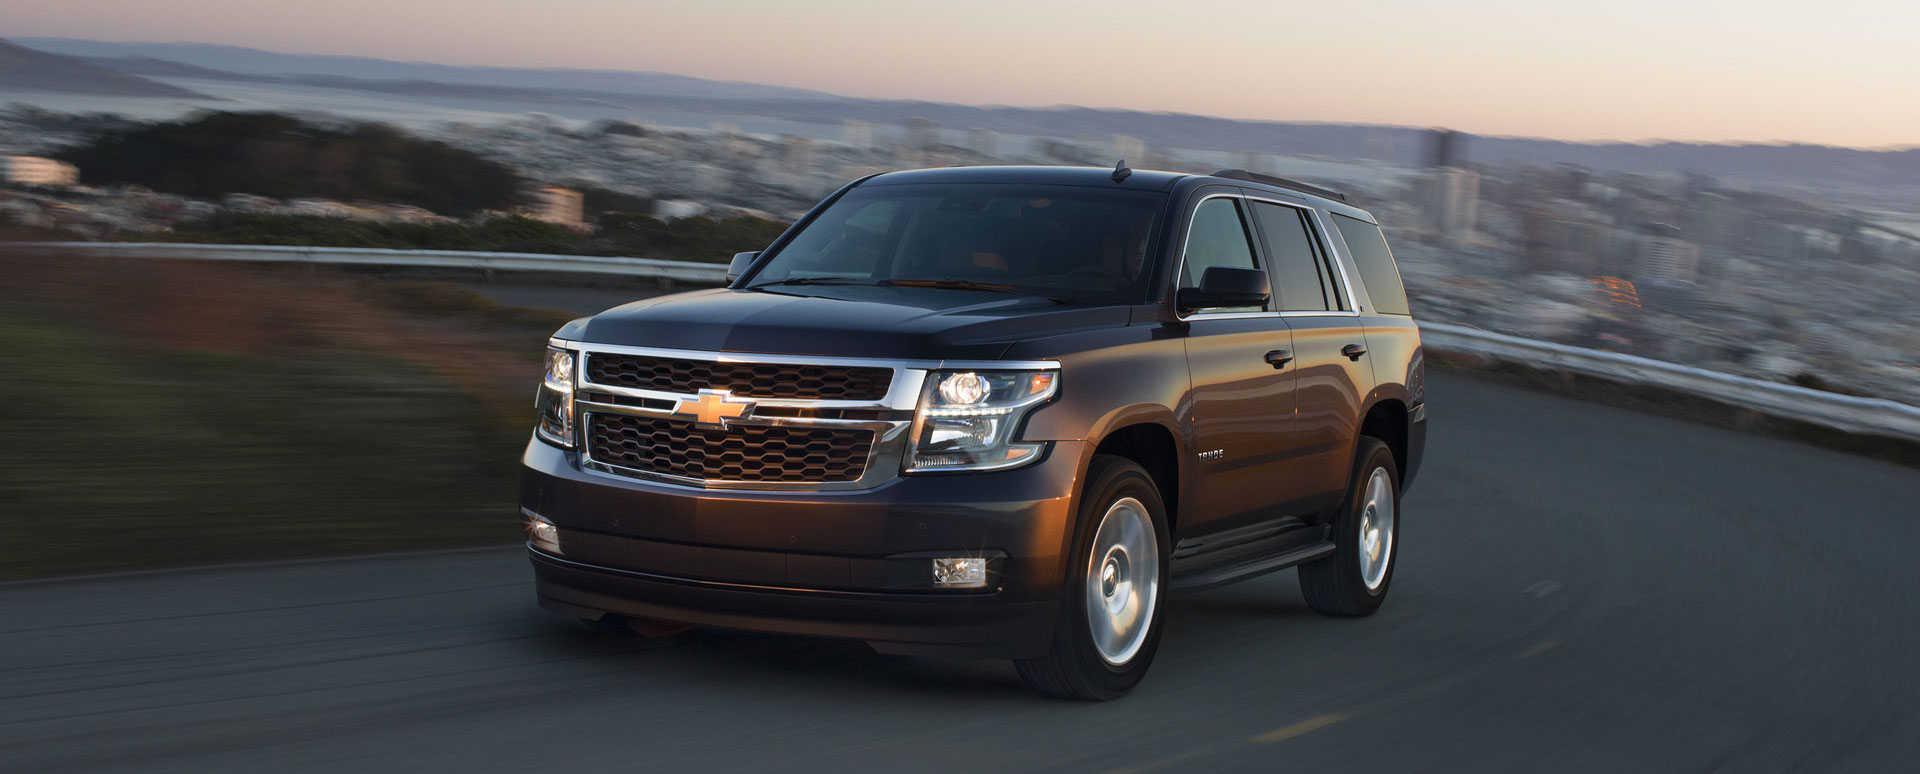 2017 chevy tahoe take a look at the power performance and design. Black Bedroom Furniture Sets. Home Design Ideas